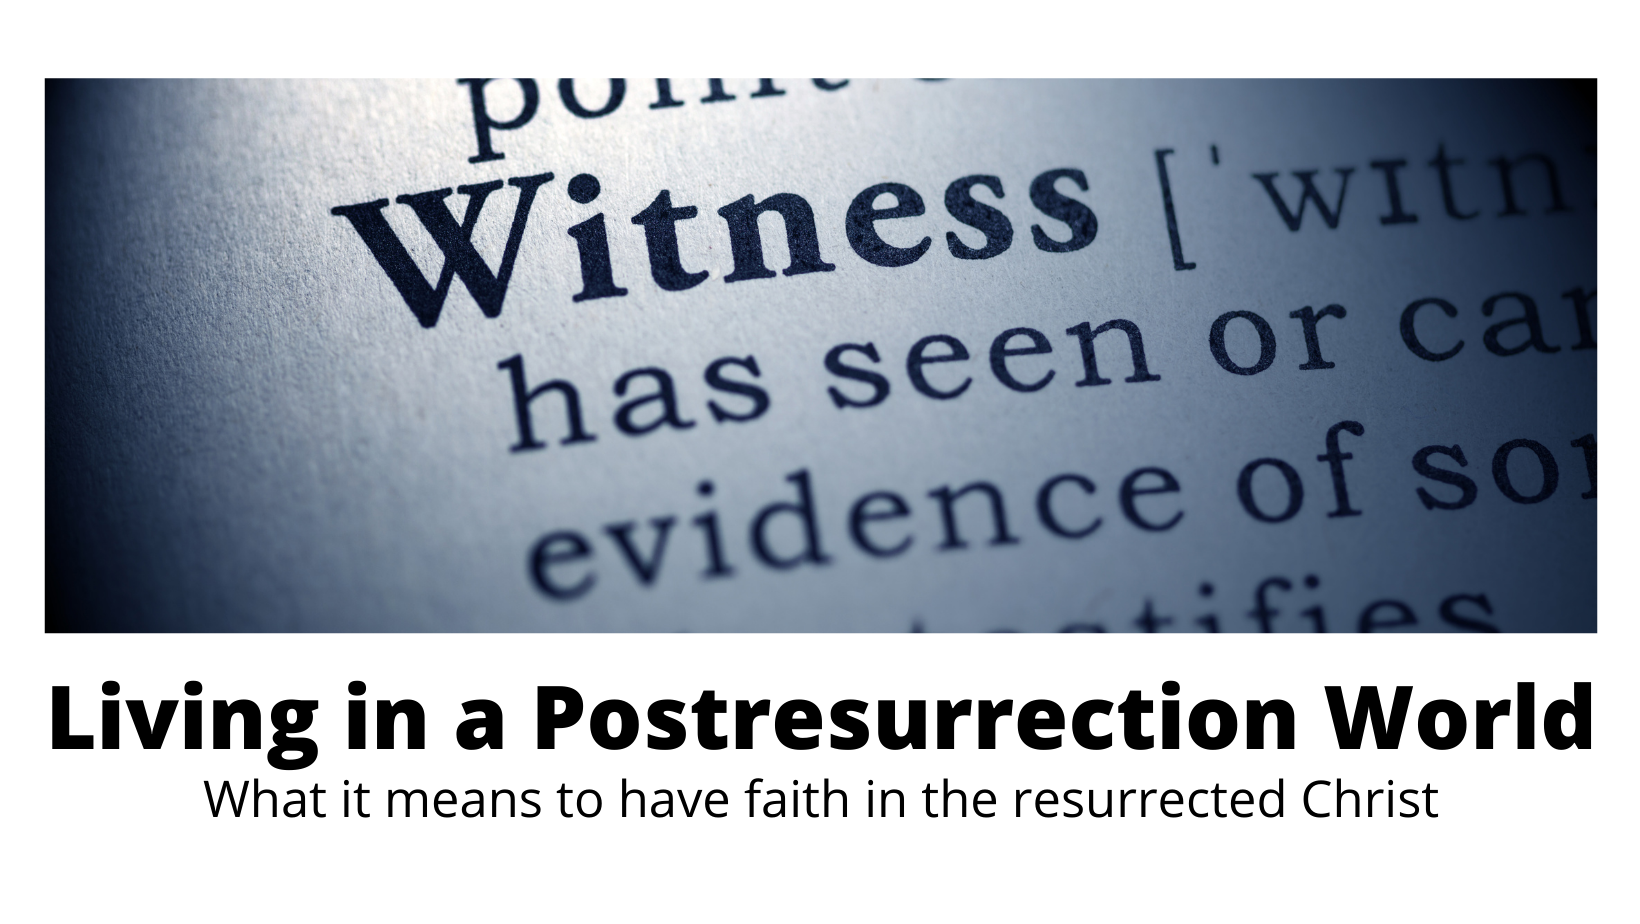 Witness: Living in a Postresurrection World